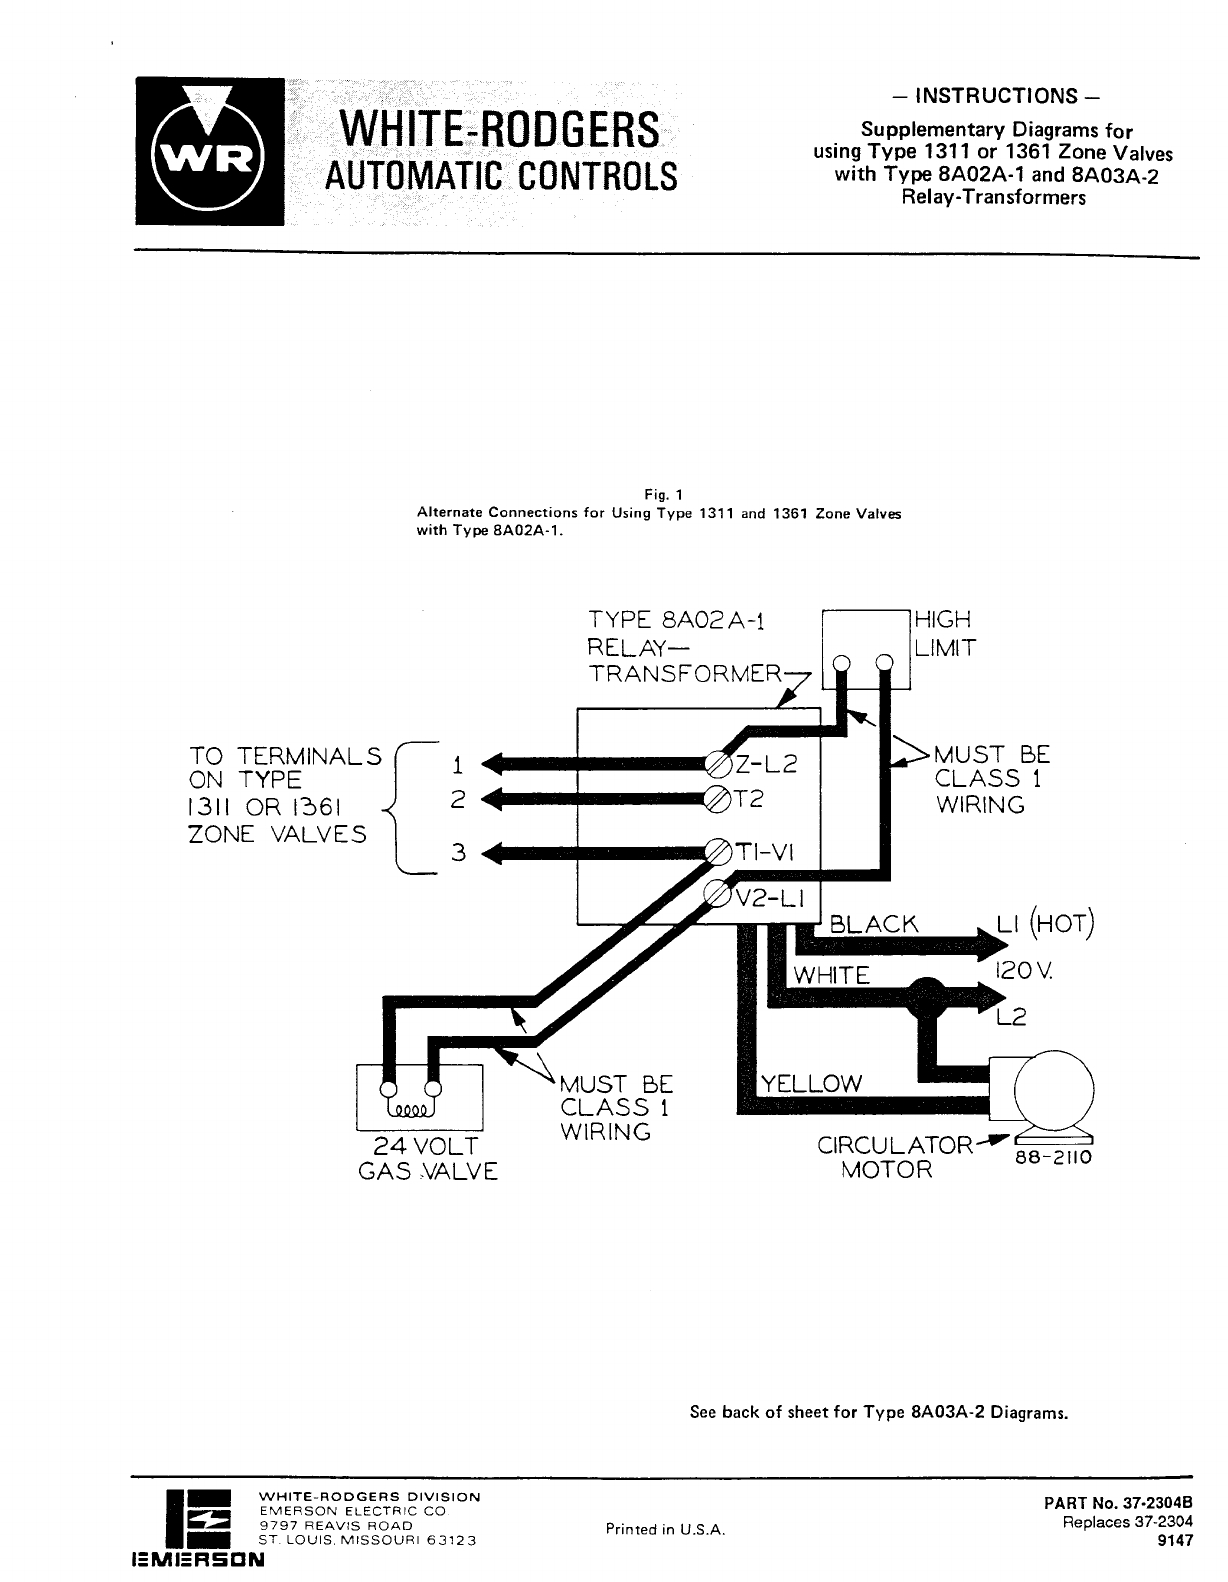 Gas Valve Relay Wiring Diagram